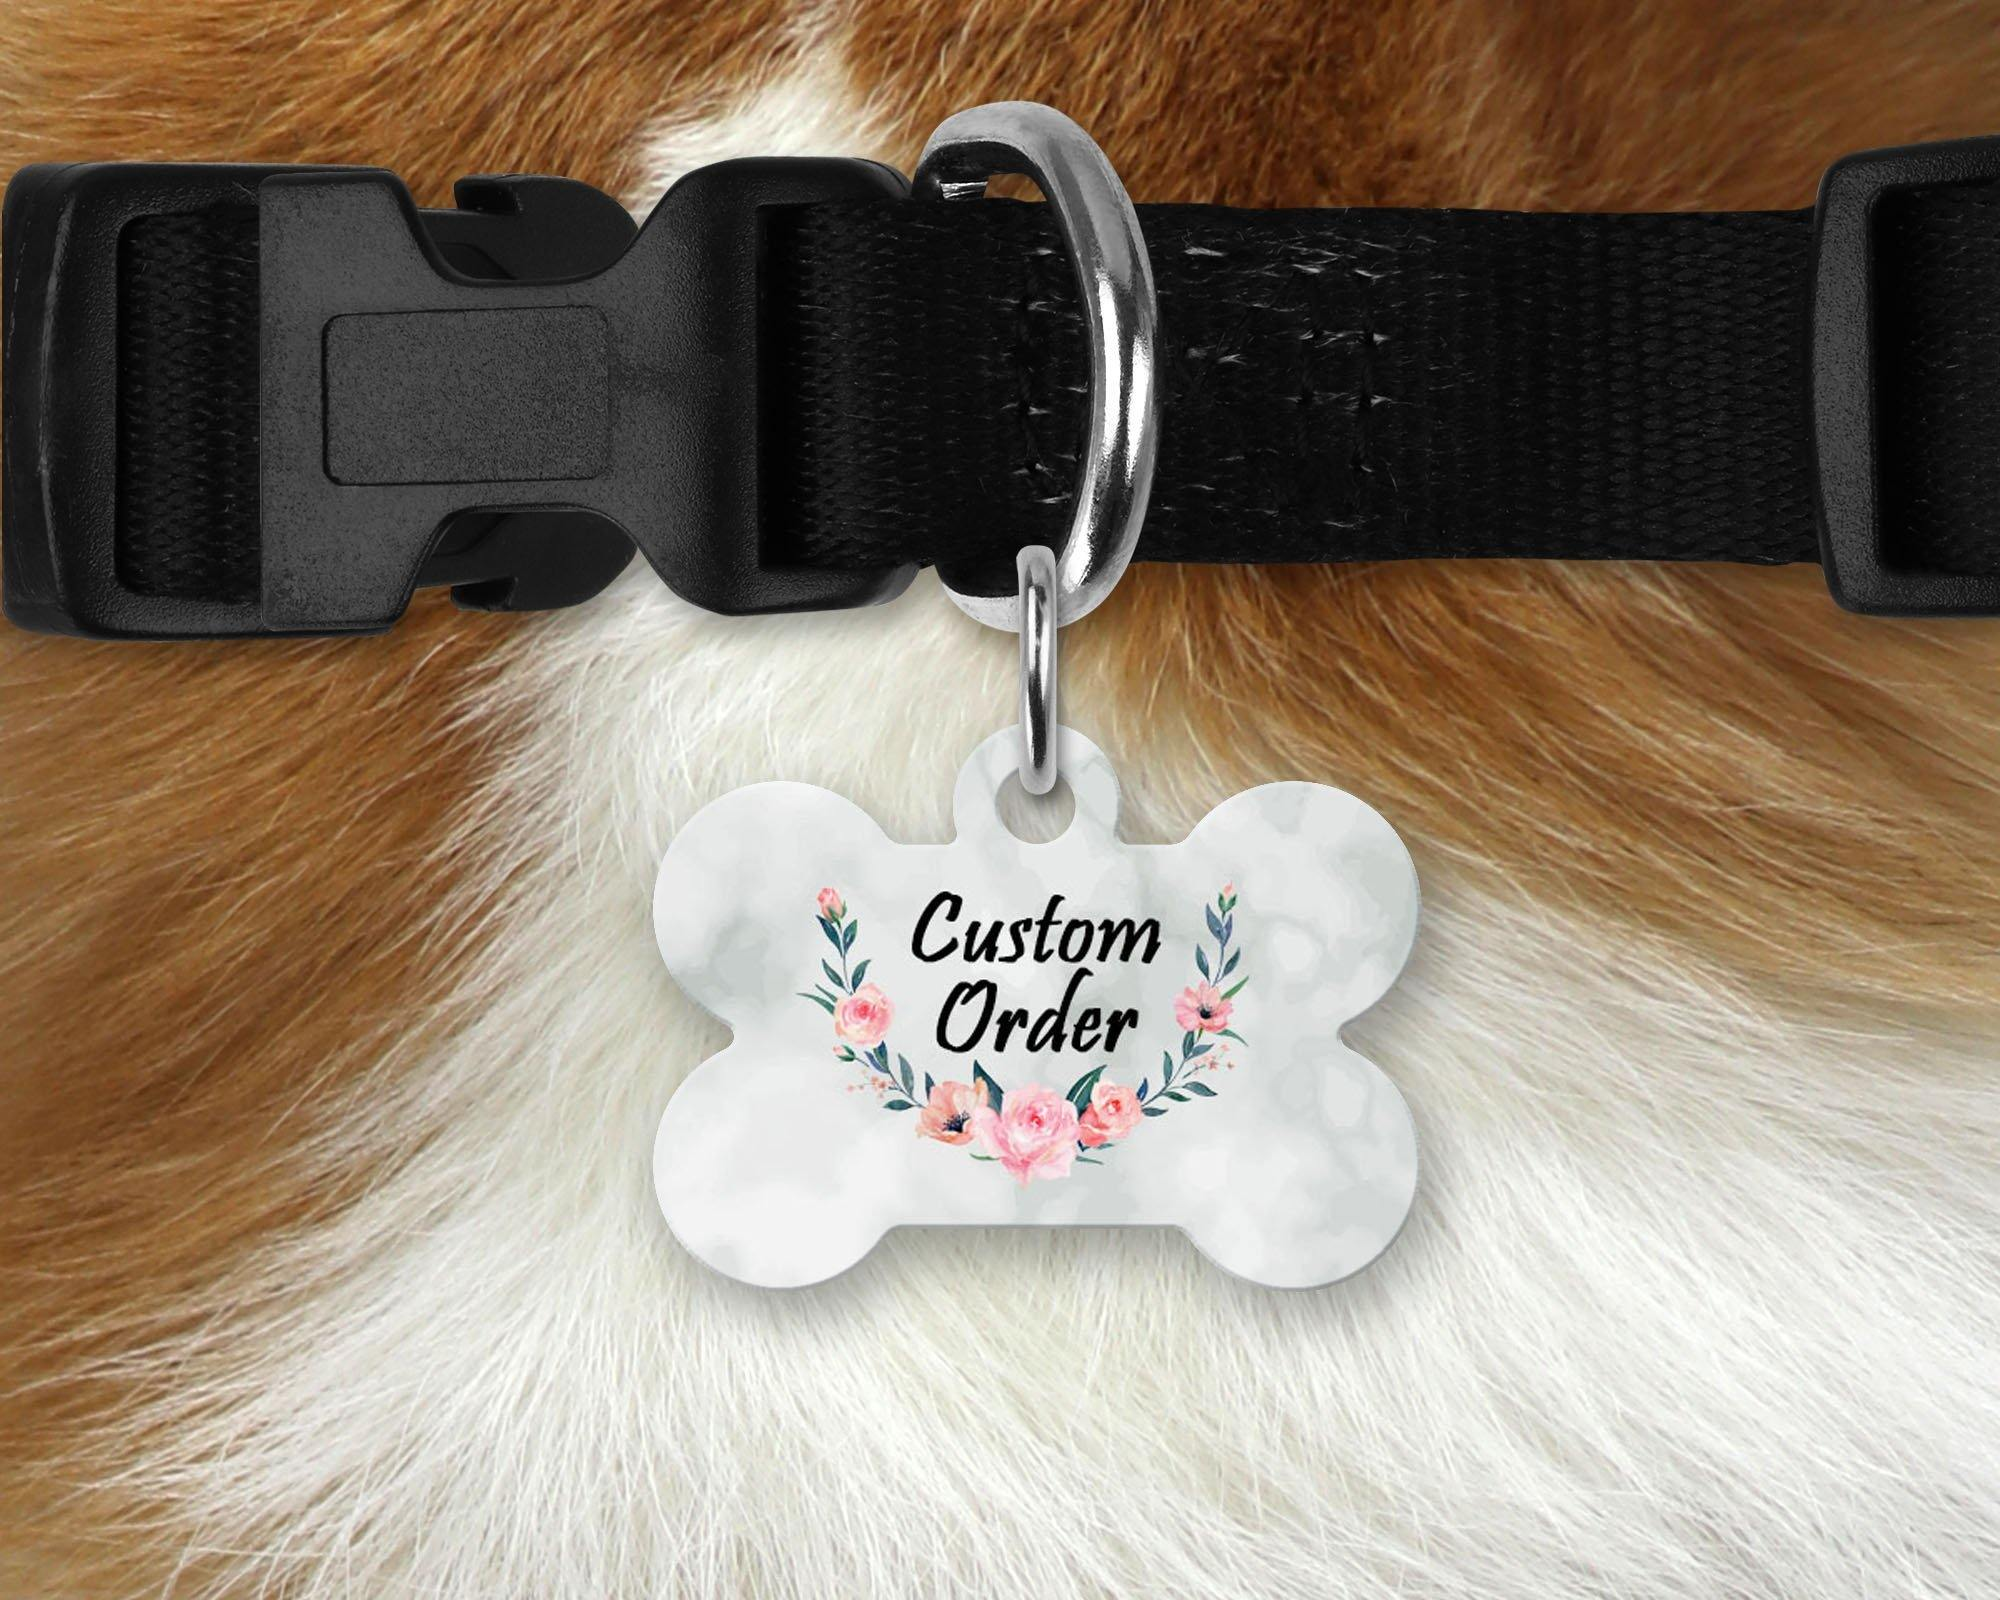 Pet ID Tags | Personalized Pet Tags | Custom Pet Tags | Pet Accessories | Custom Order | This and That Solutions | Personalized Gifts | Custom Home Décor